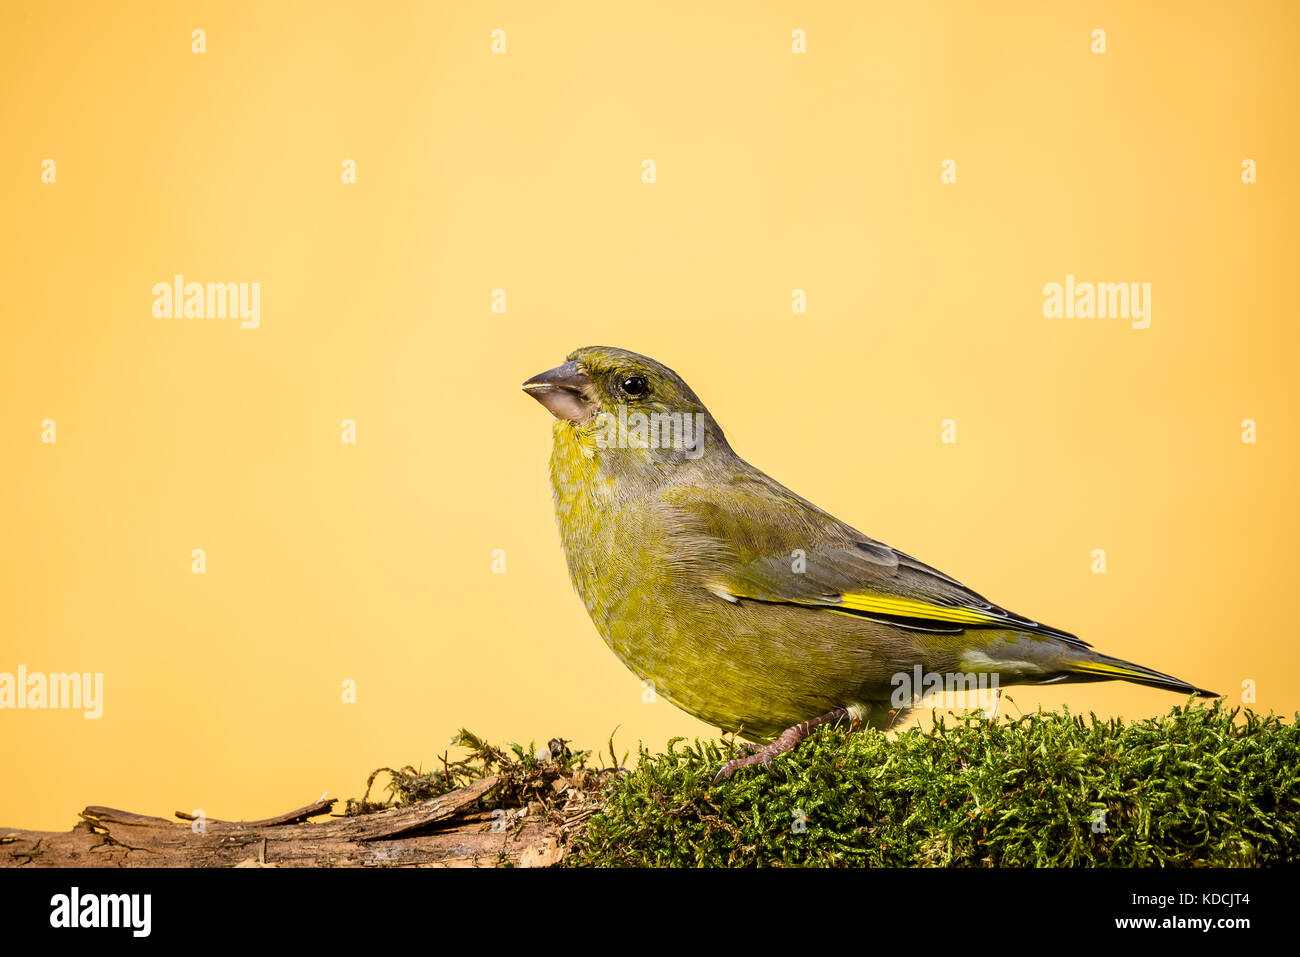 Horizontal photo of male greenfinch songbird. Bird with yellow, green and grey feathers. Animal is perched on dry - Stock Image